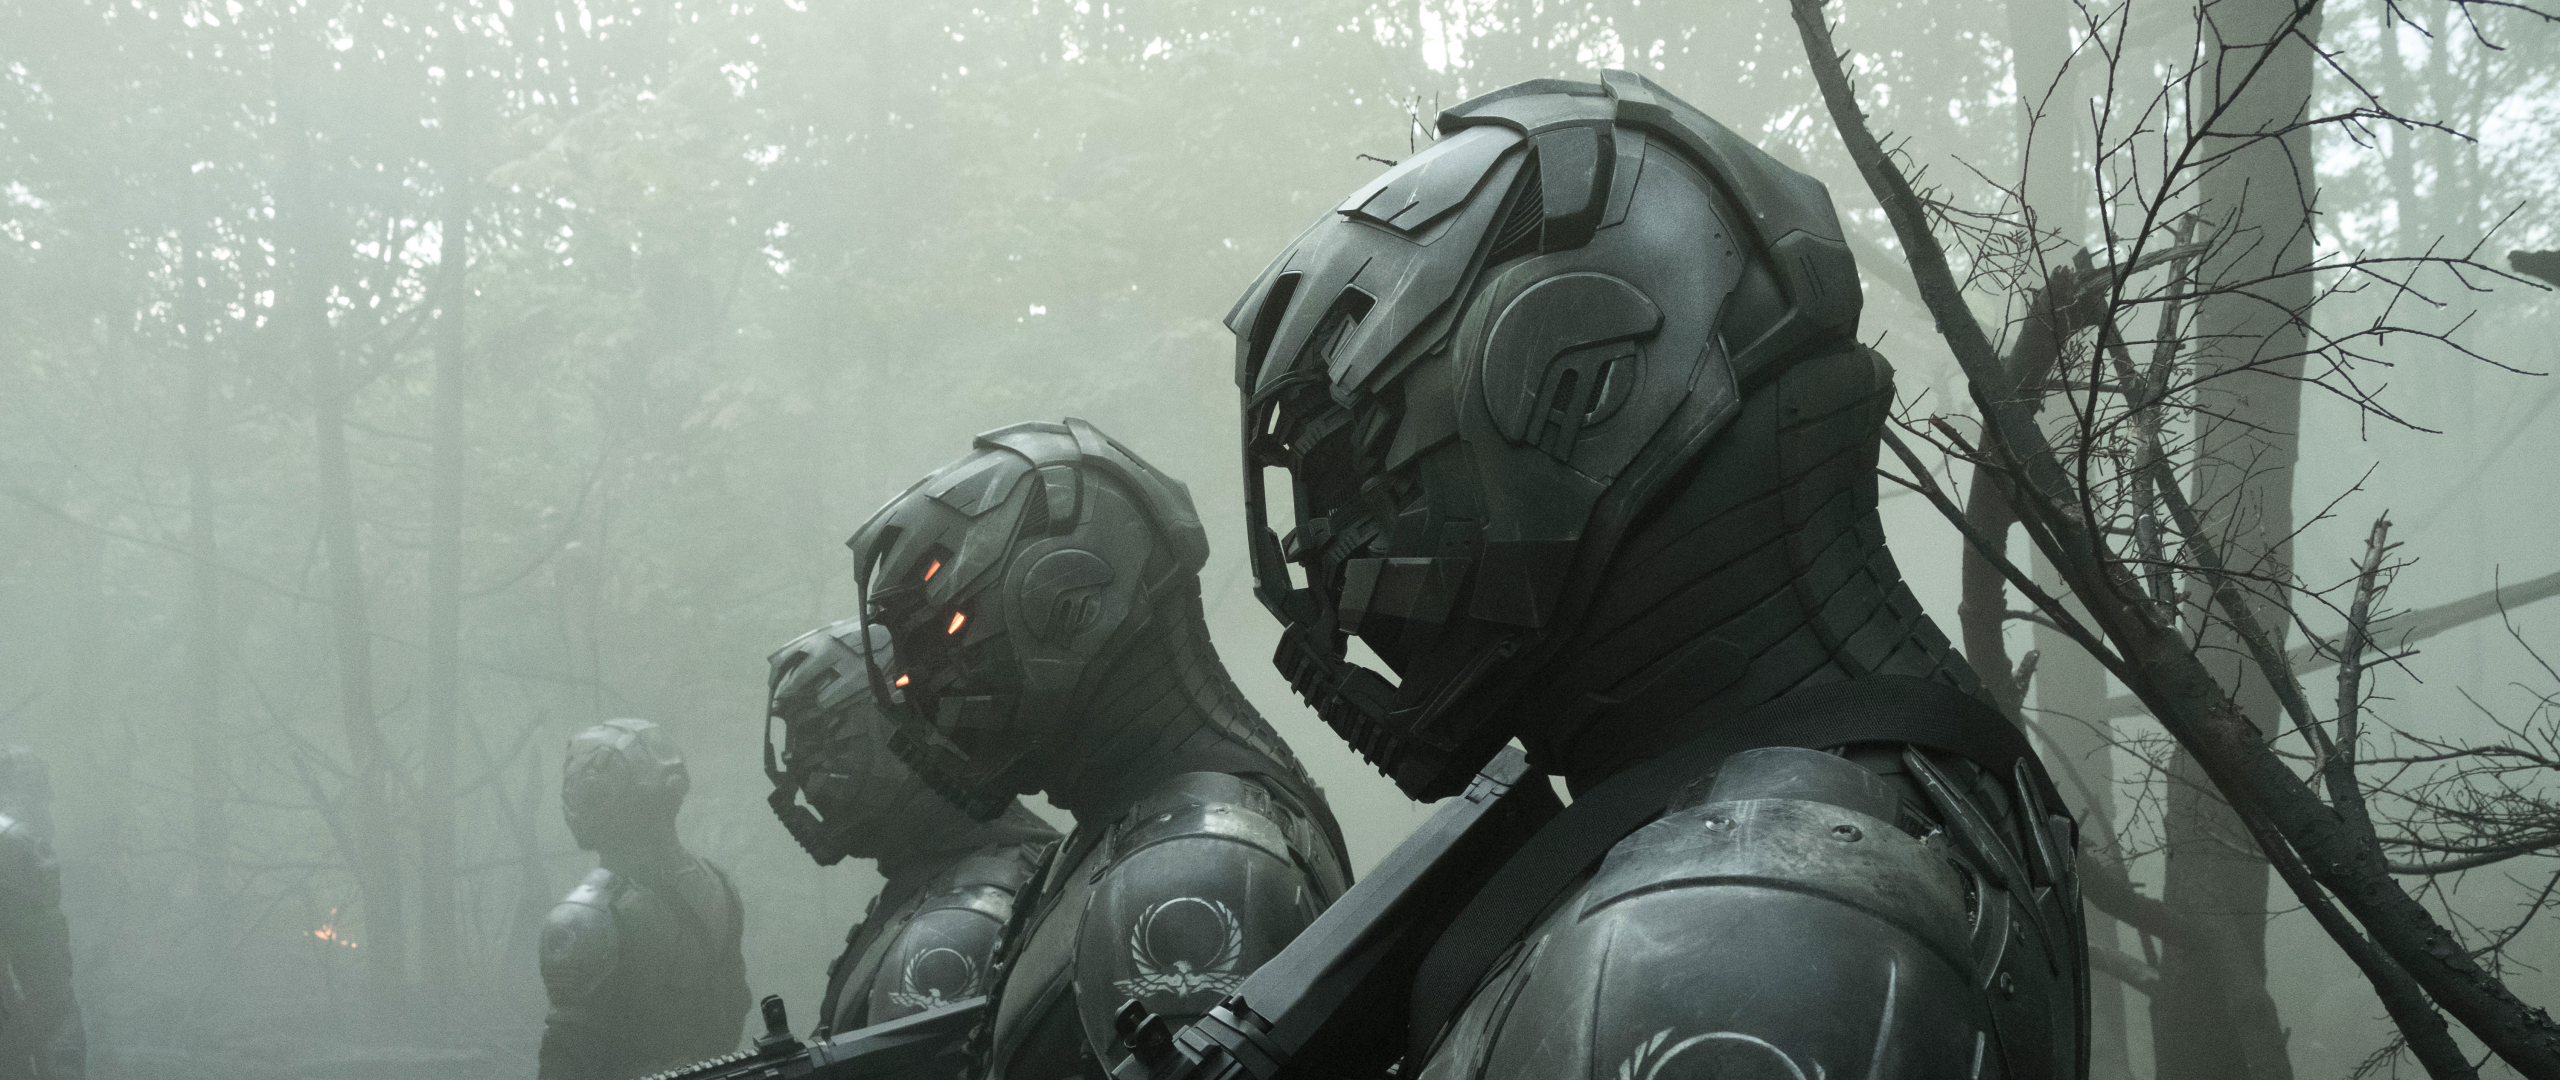 Envoys from Altered Carbon Wallpaper in 2560x1080 Resolution